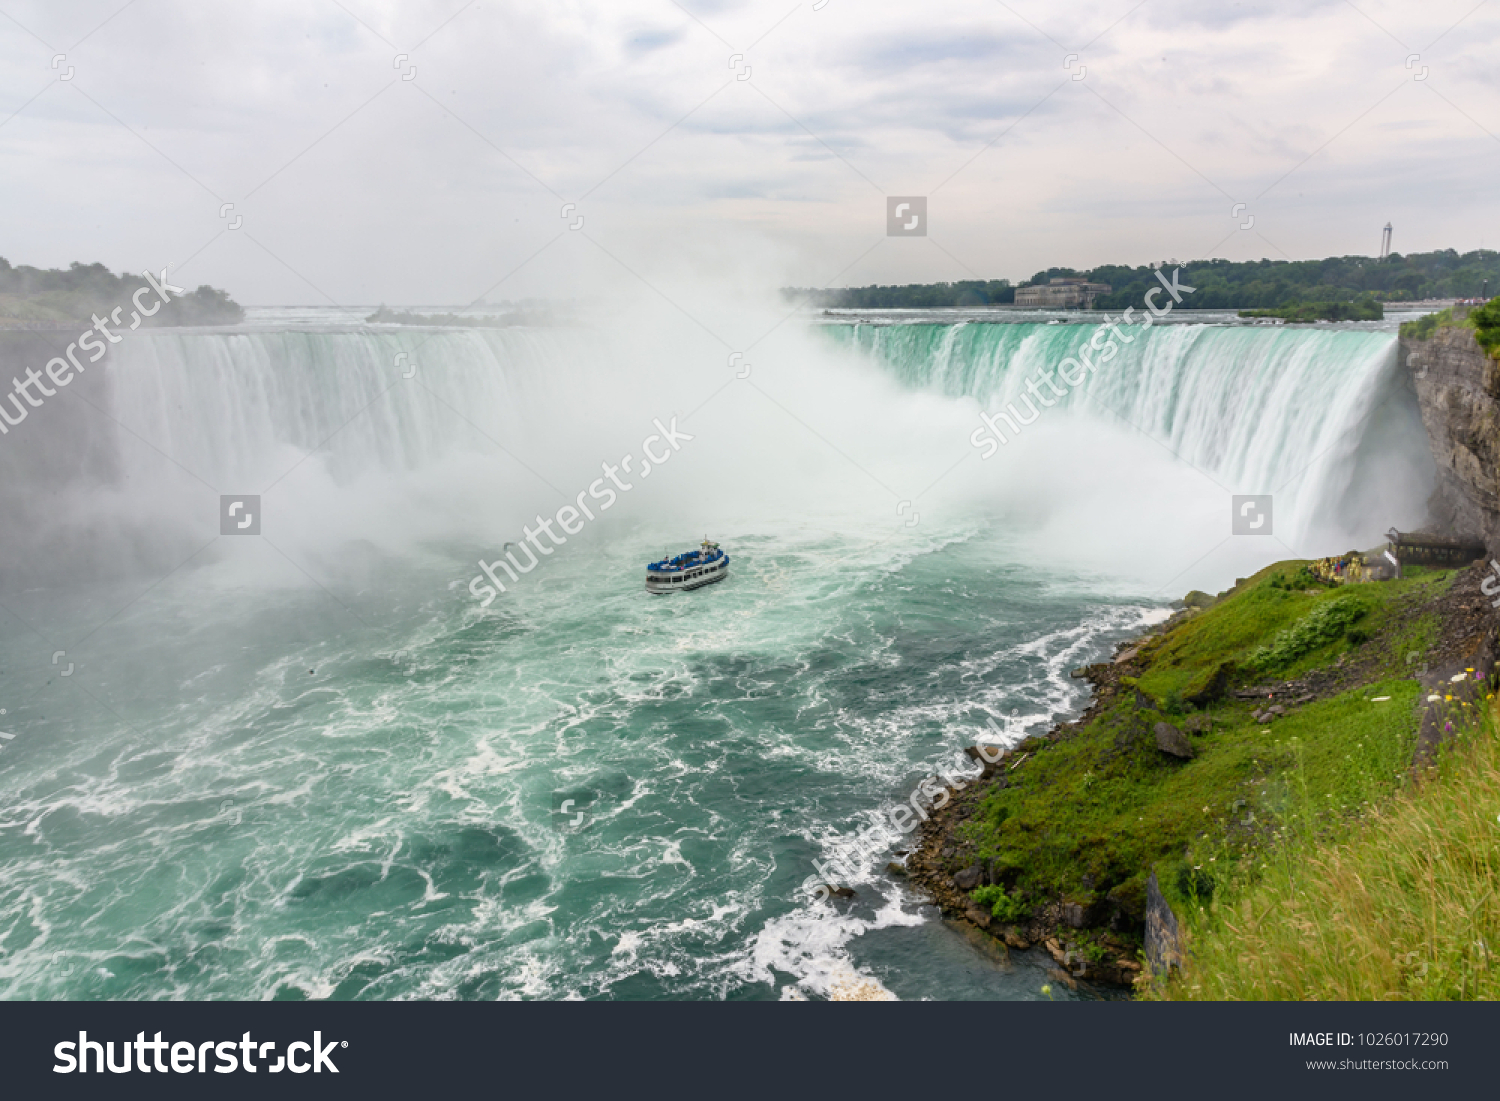 Oldest Park Usa containing American Falls, Bridal Veil Falls and Horseshoe Falls #1026017290